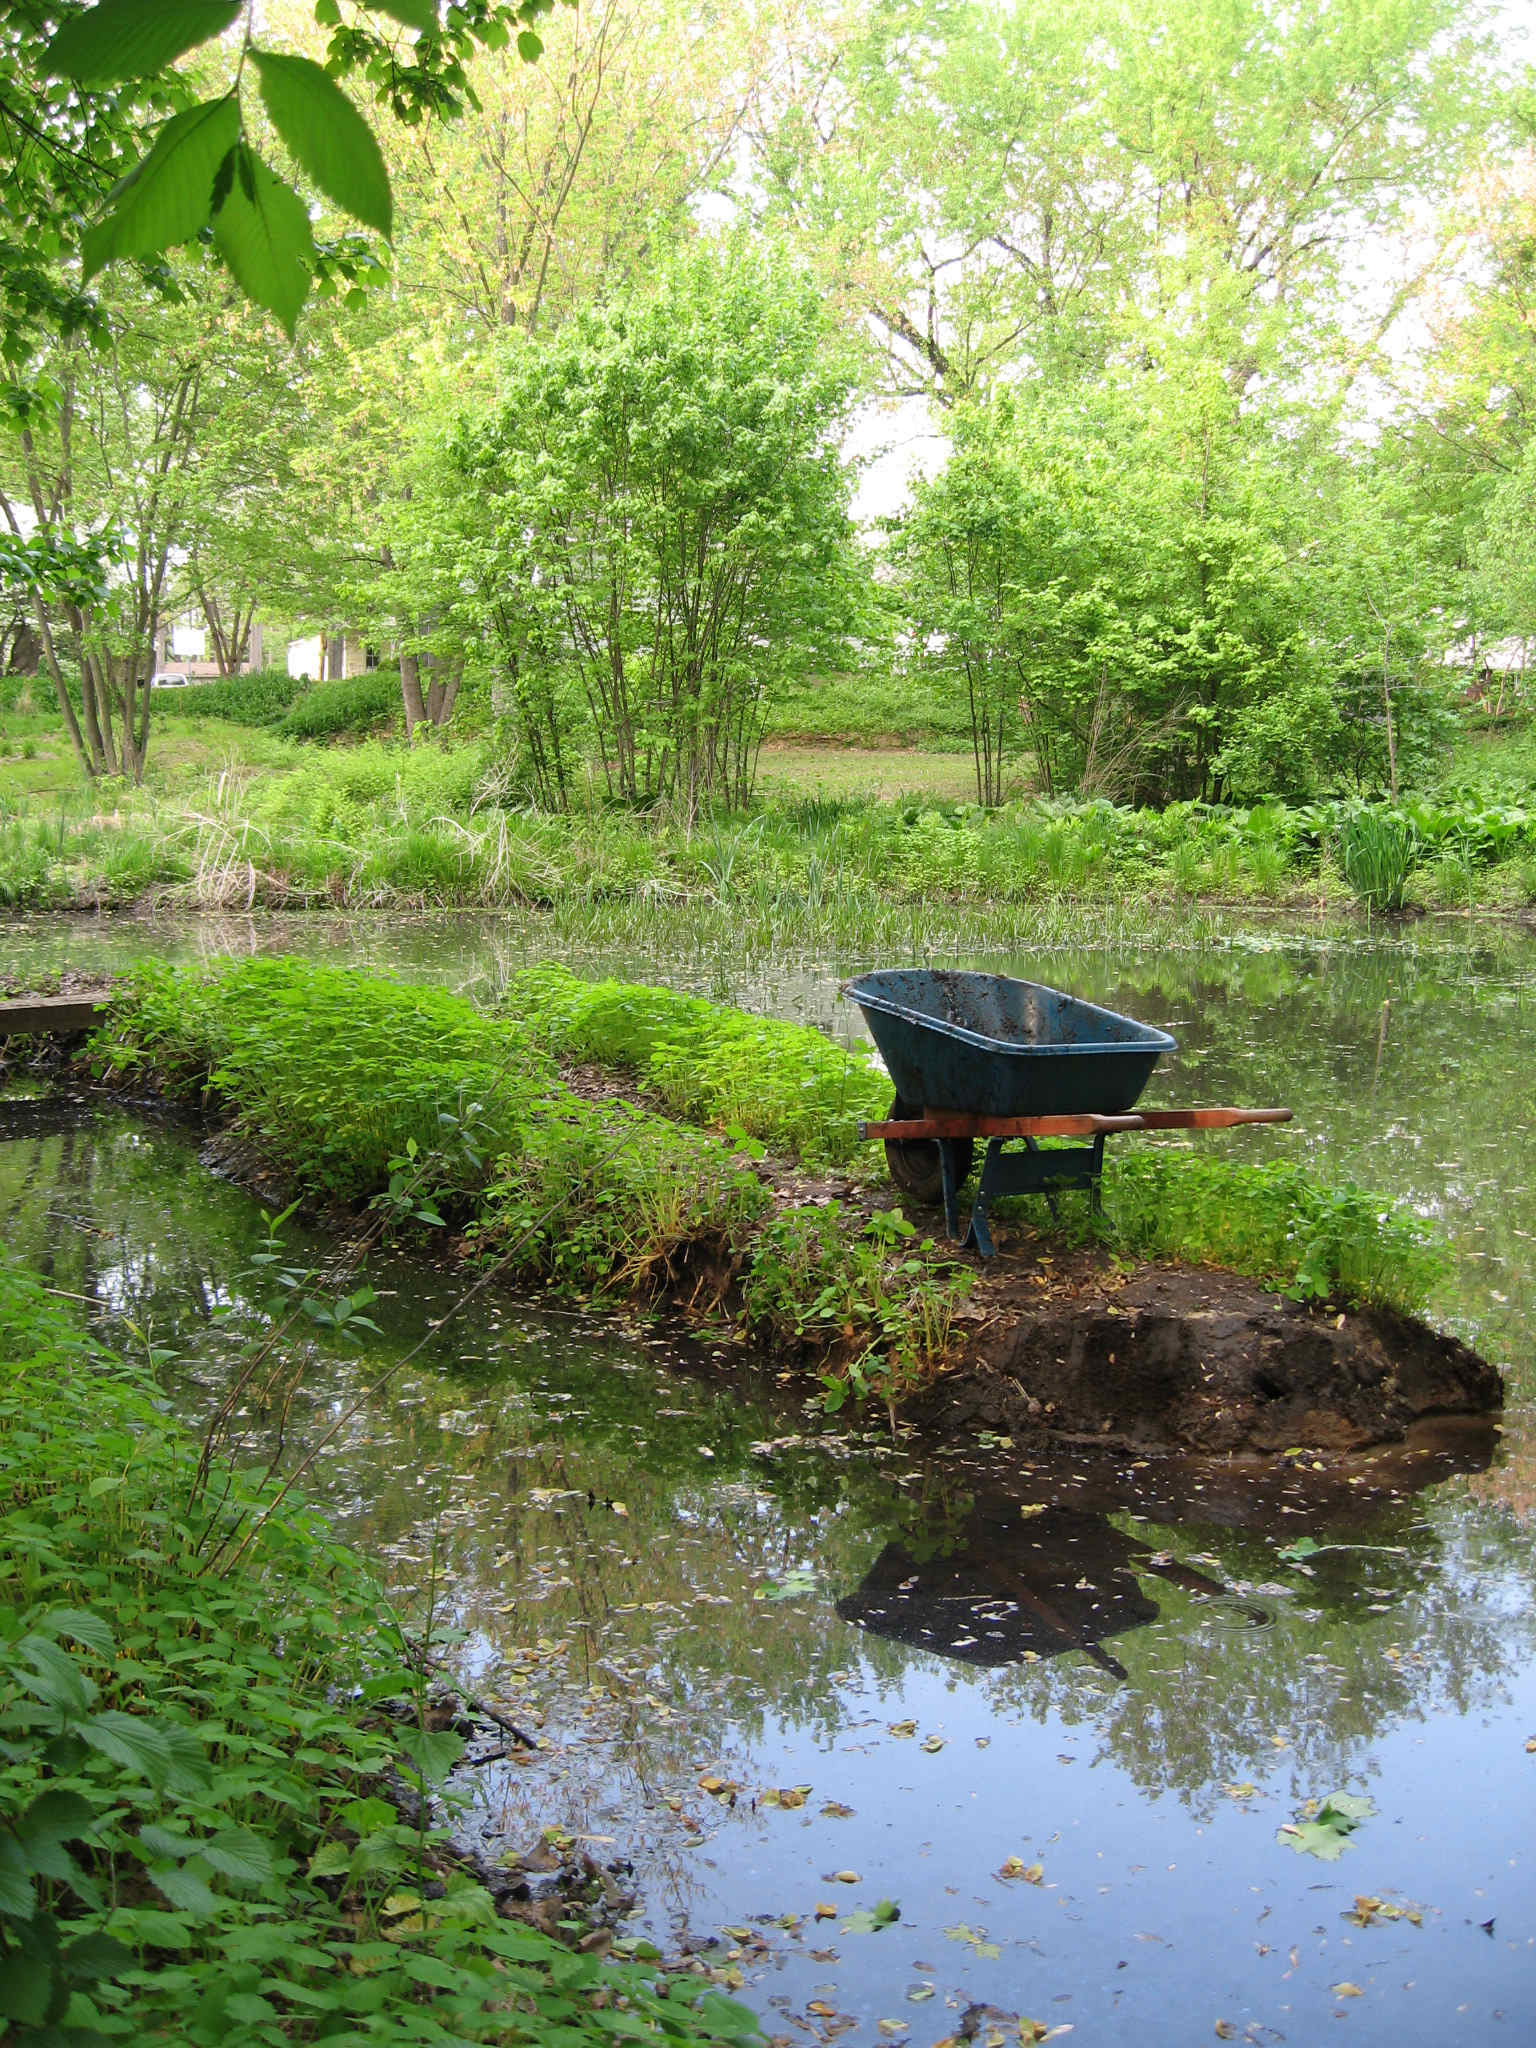 During 2008, we have been shrinking this small island at Synnott's Pond one wheelbarrow at a time in order to improve overall water circulation.